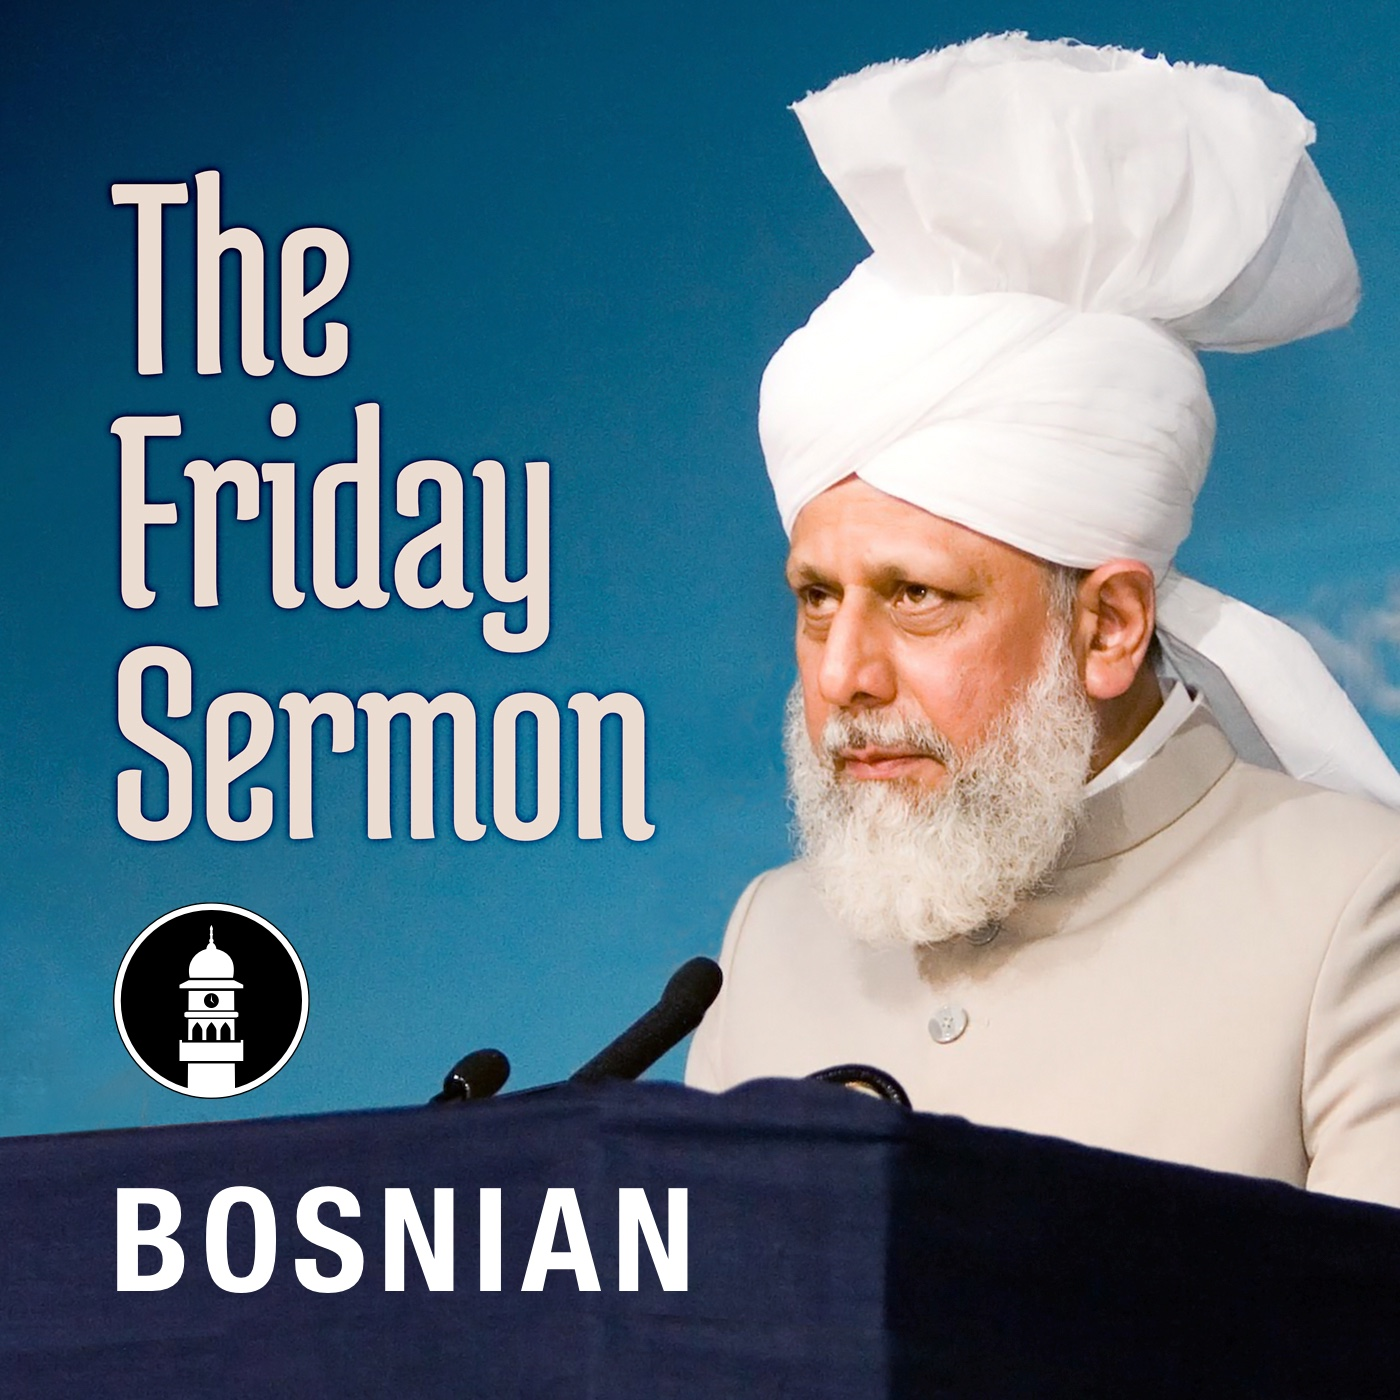 Bosnian Friday Sermon by Head of Ahmadiyya Muslim Community